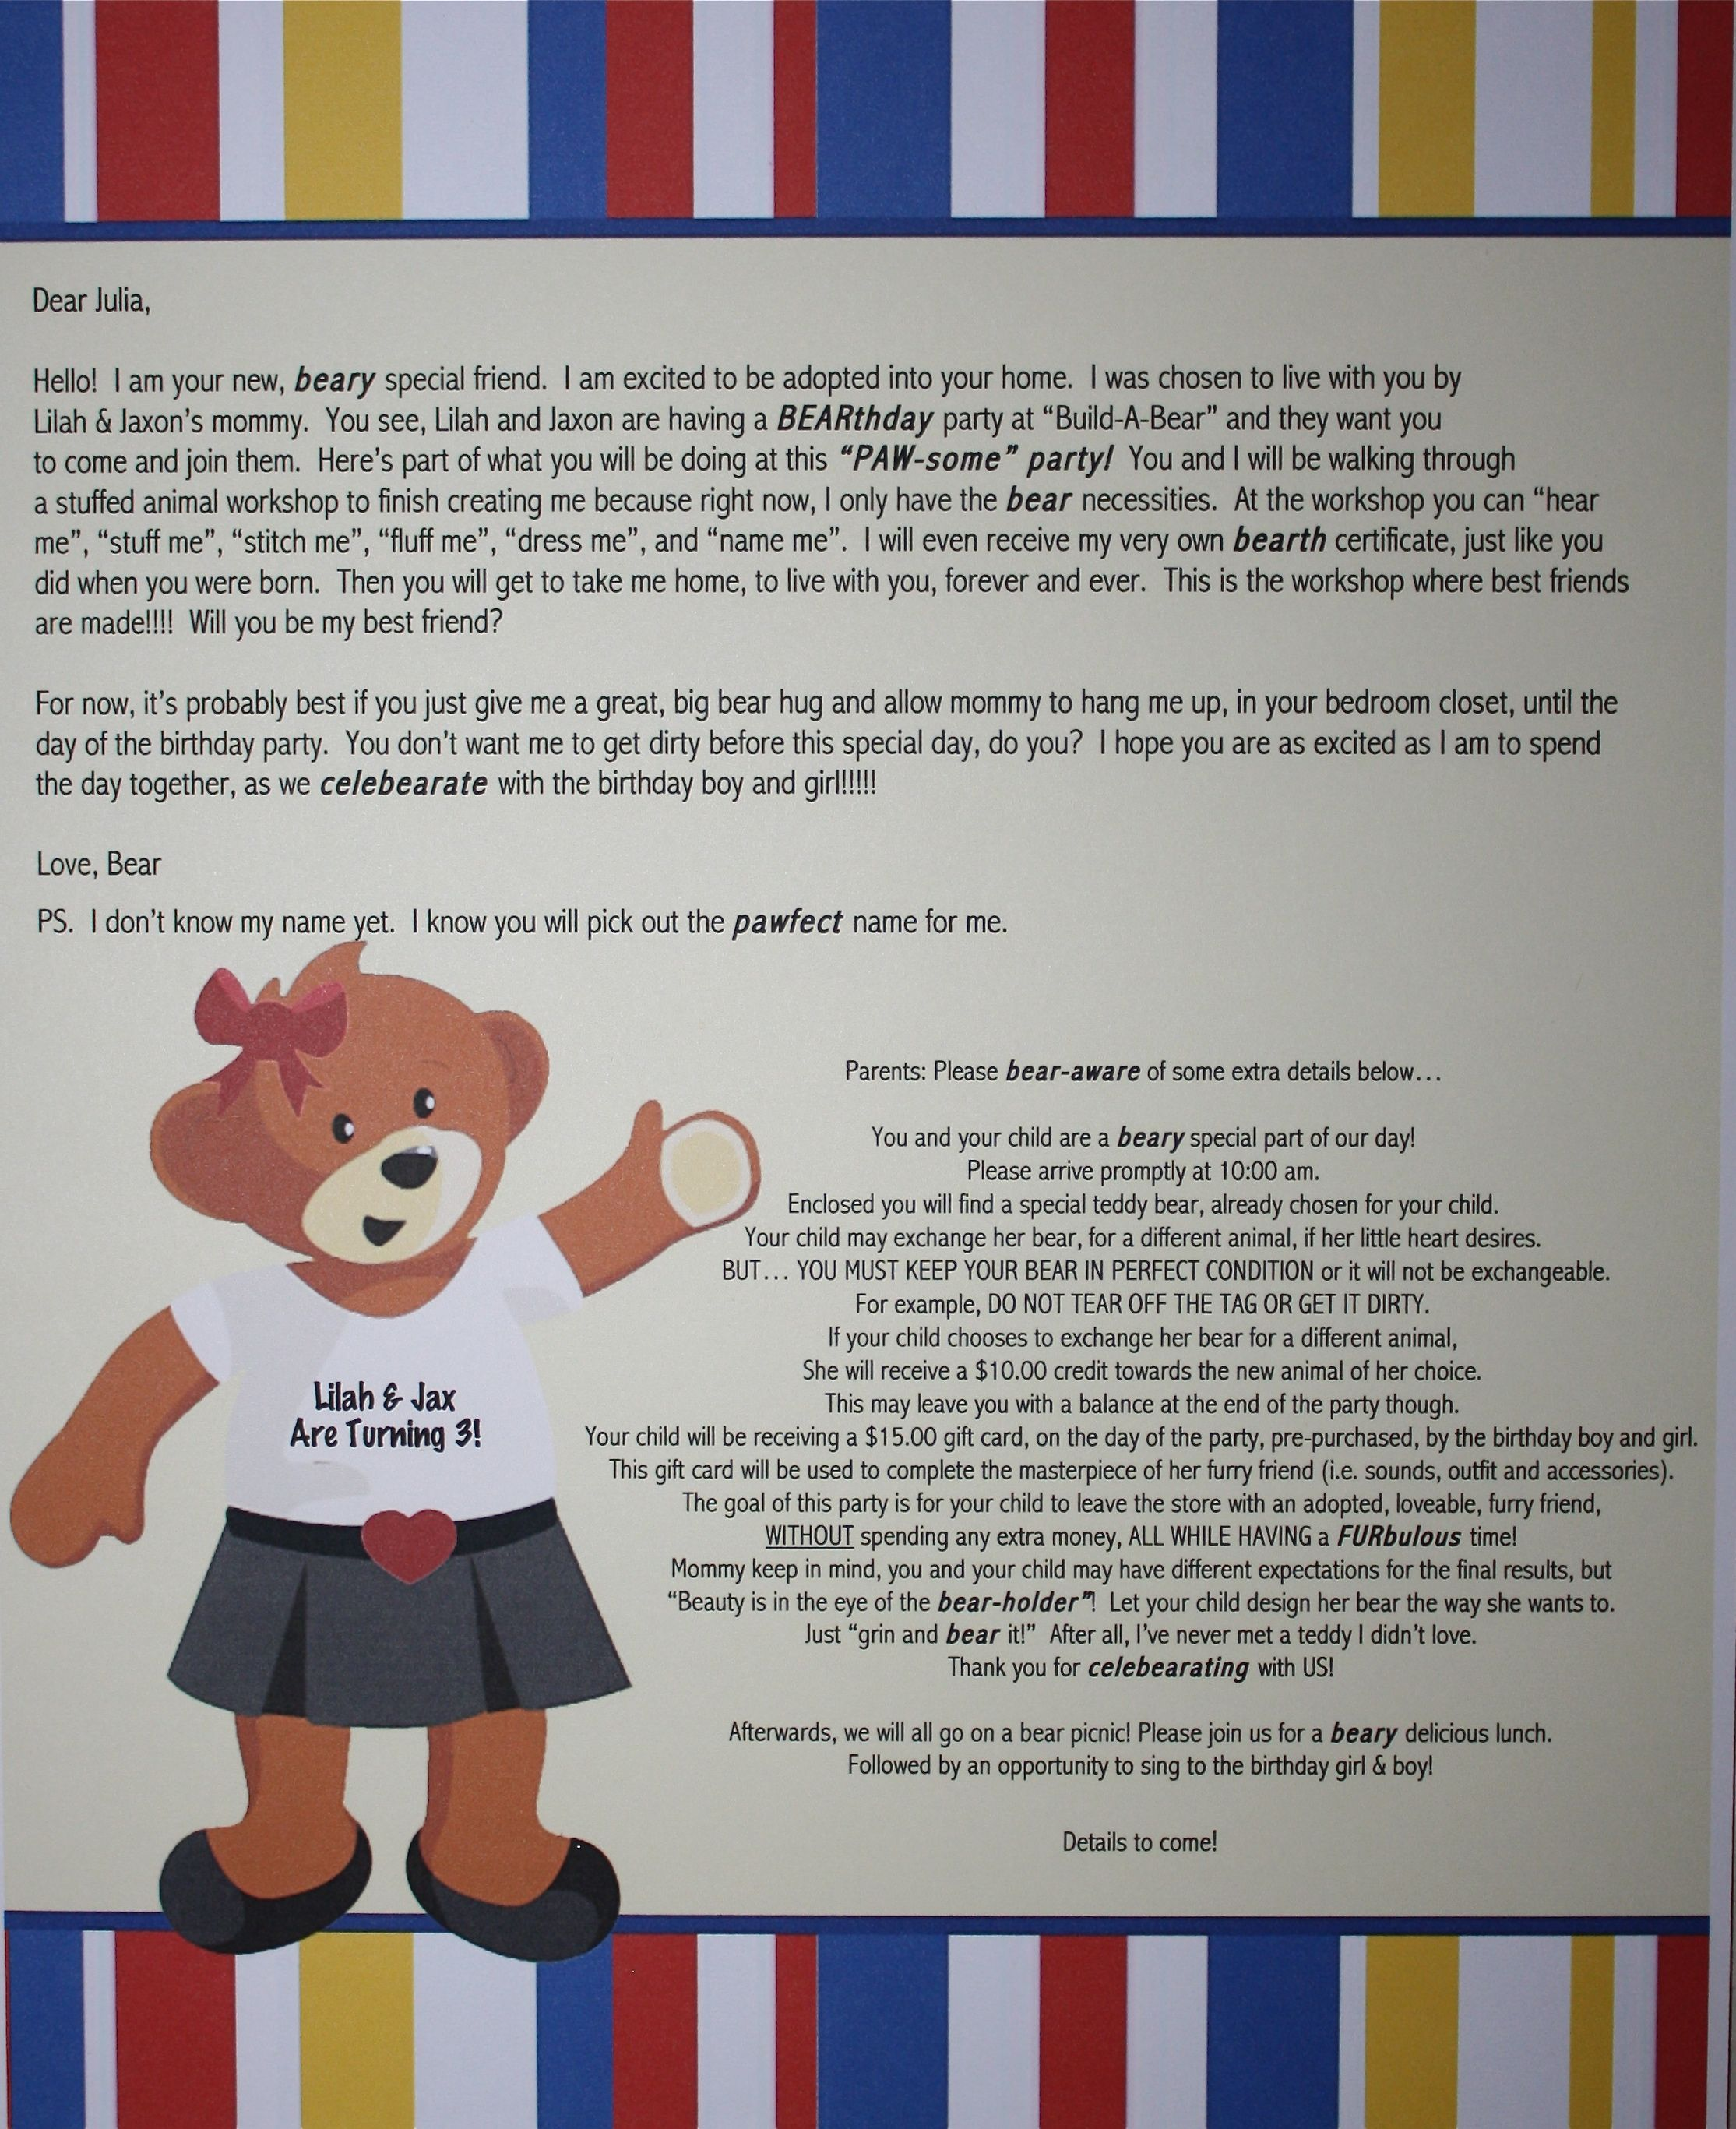 Build A Bear Invitation This was a letter sent to the girl